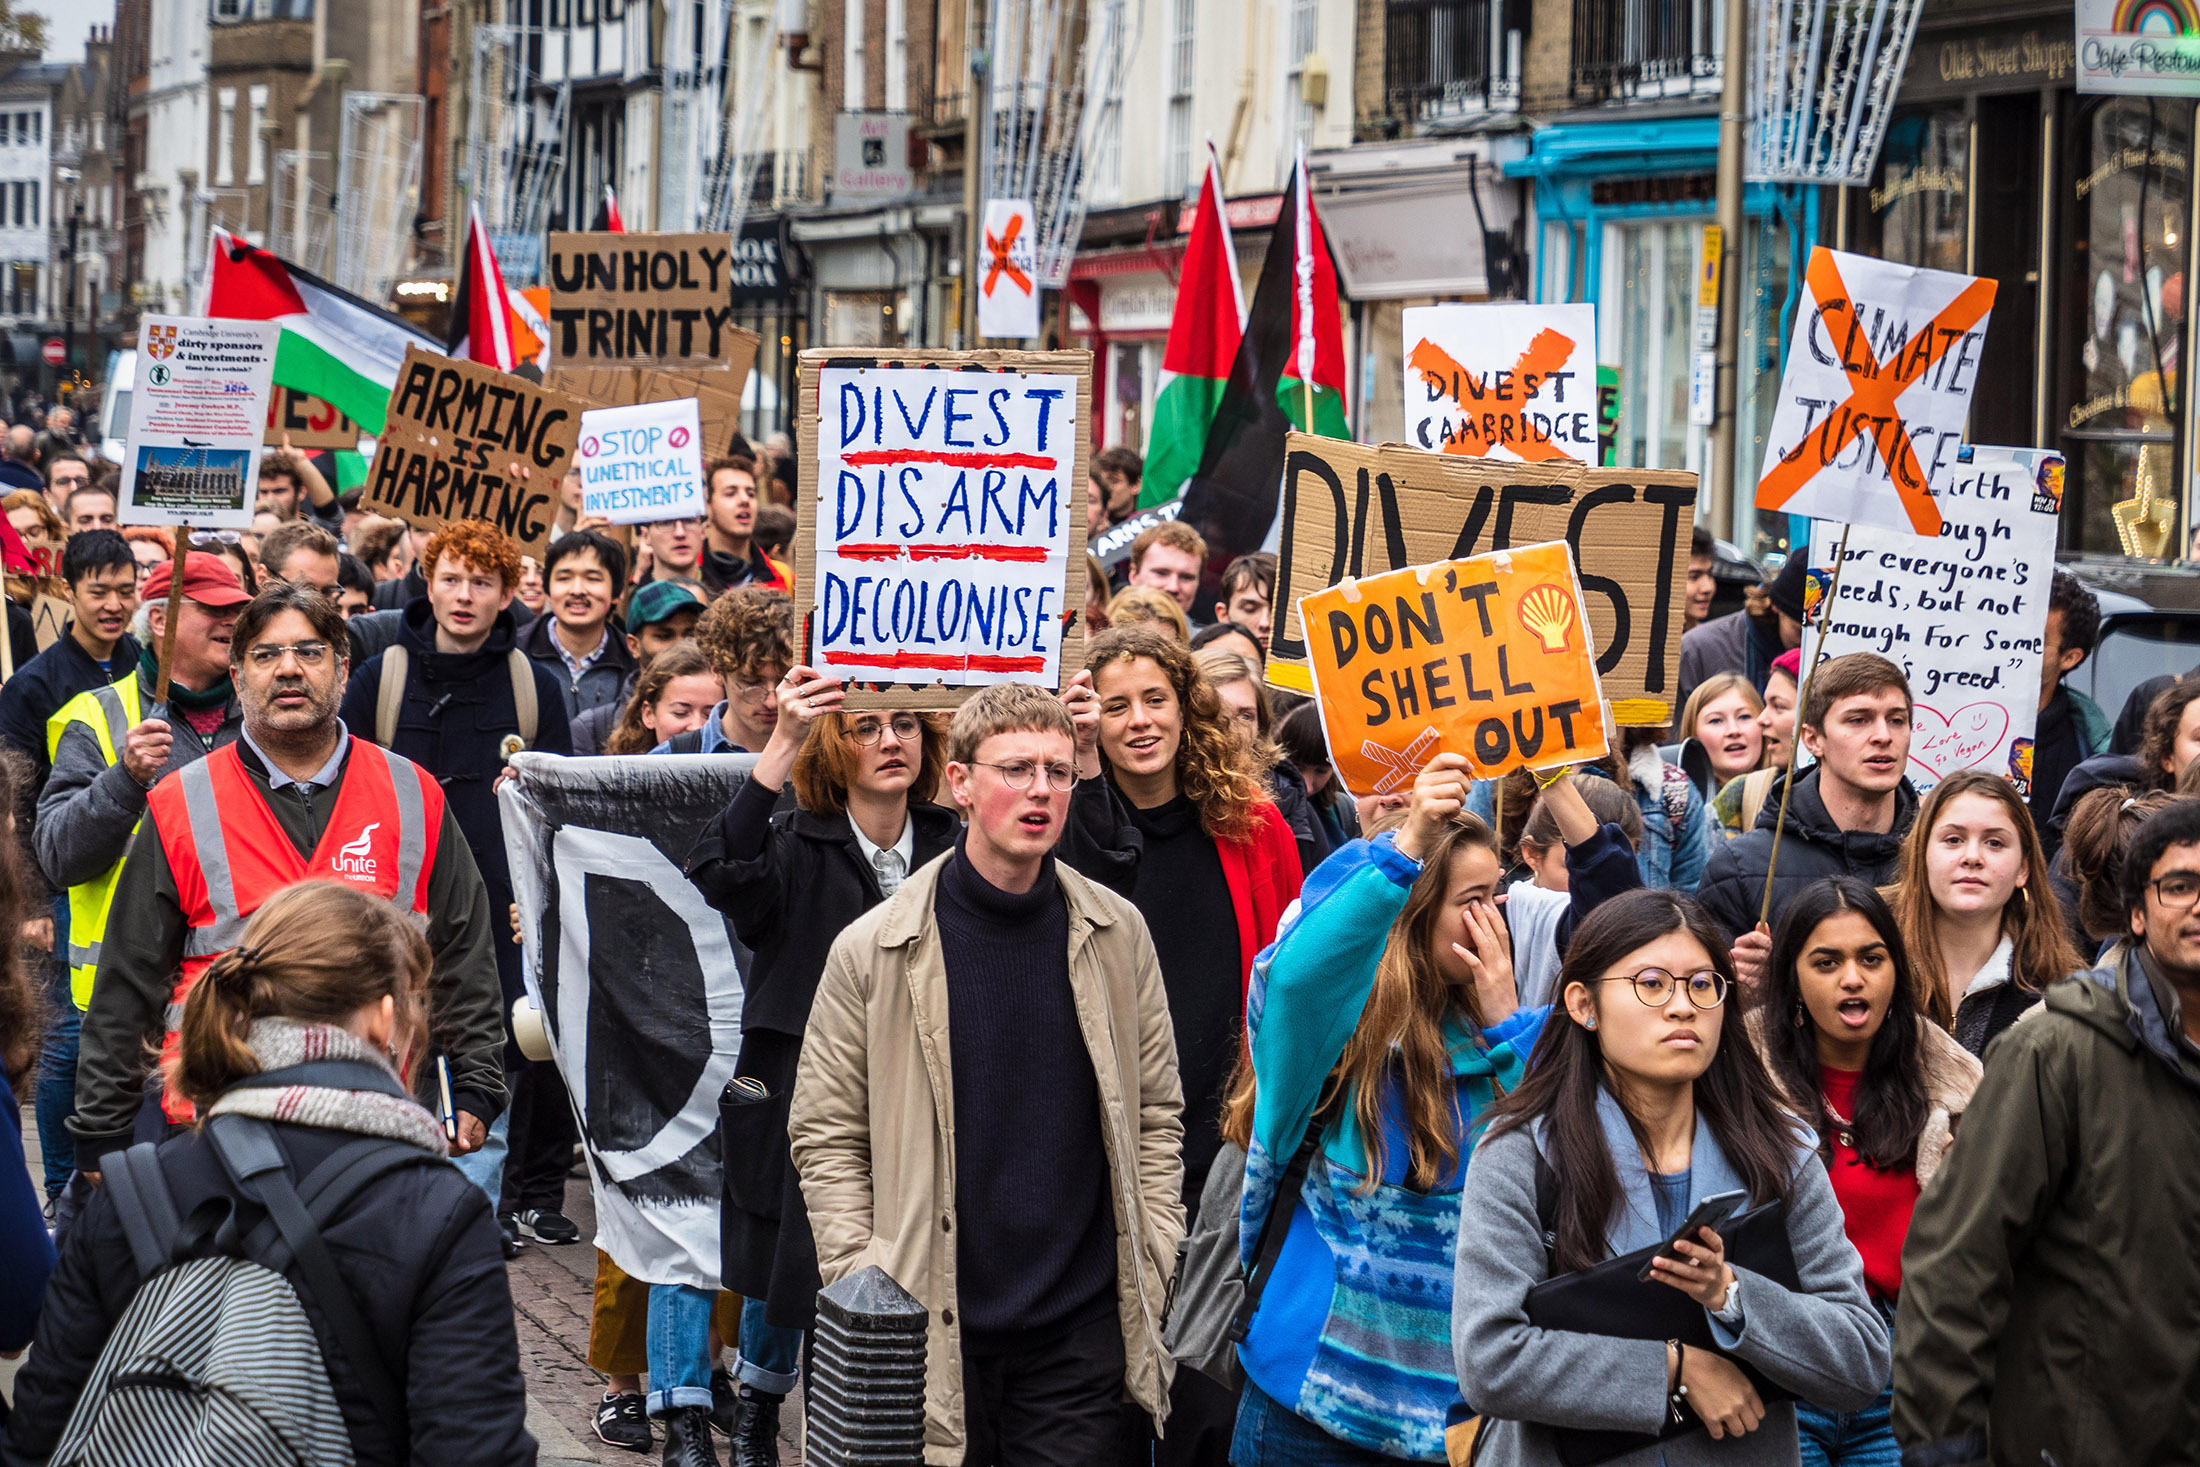 Cambridge University students march through central Cambridge demanding the university divest its unethical investments in arms and fossil fuels companiesin 2018.